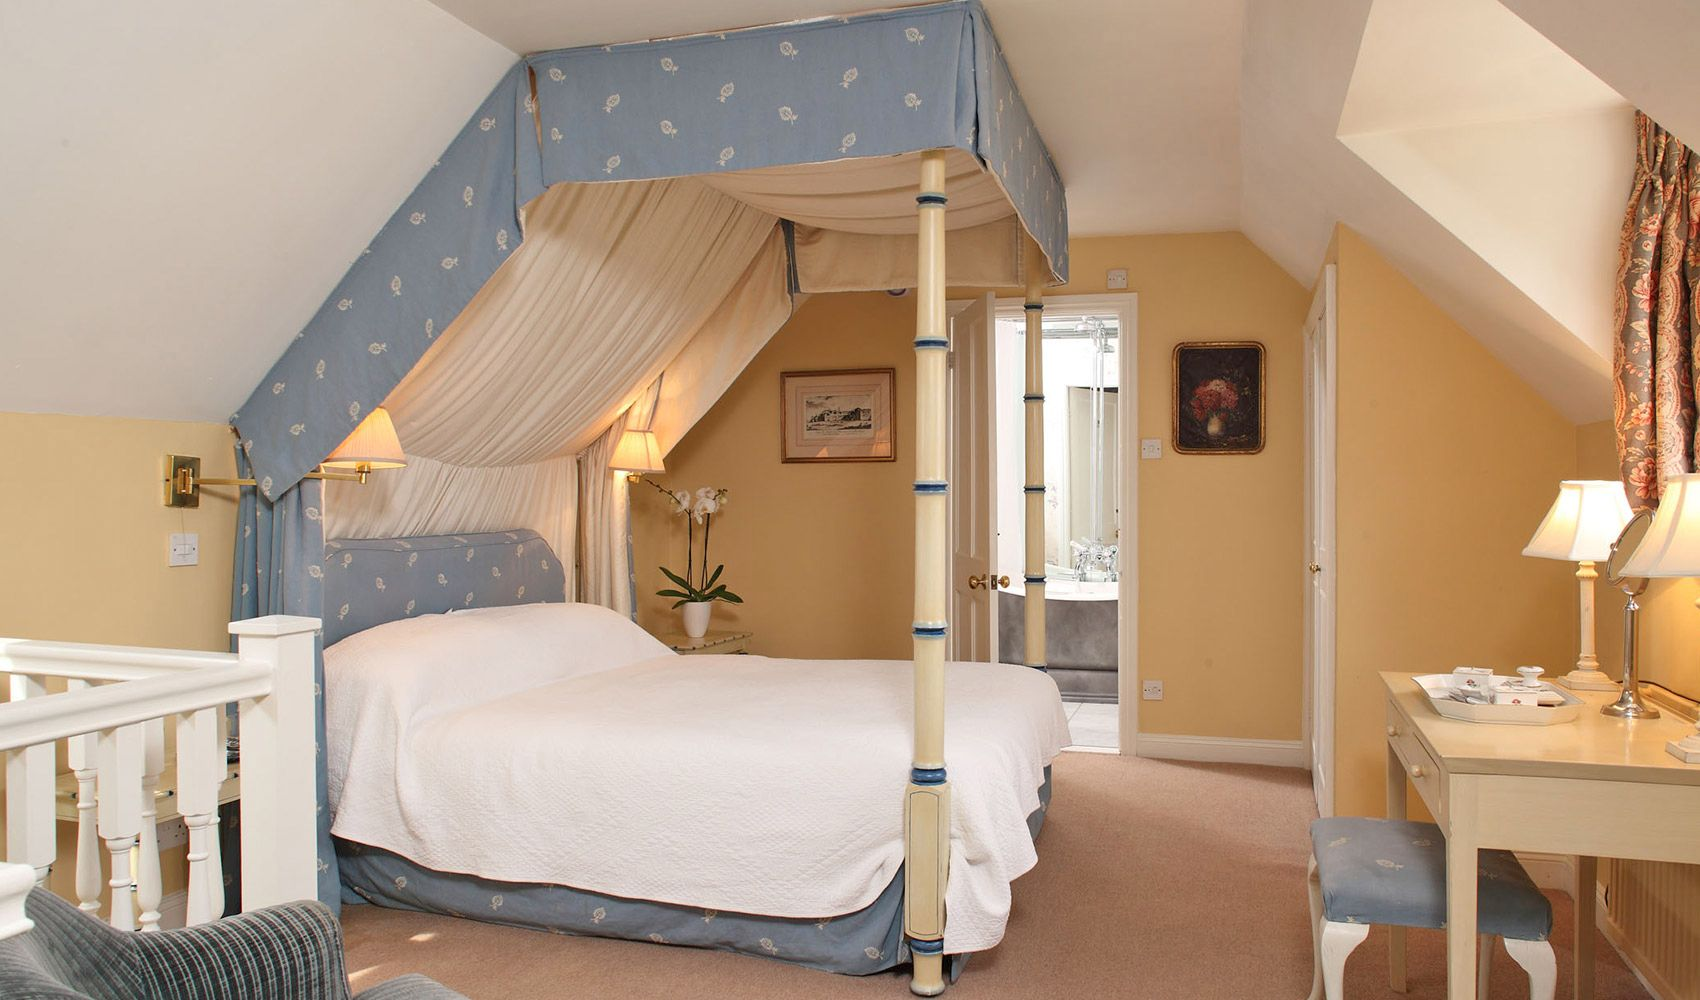 First floor: Galleried bedroom with a four poster bed & en suite bathroom